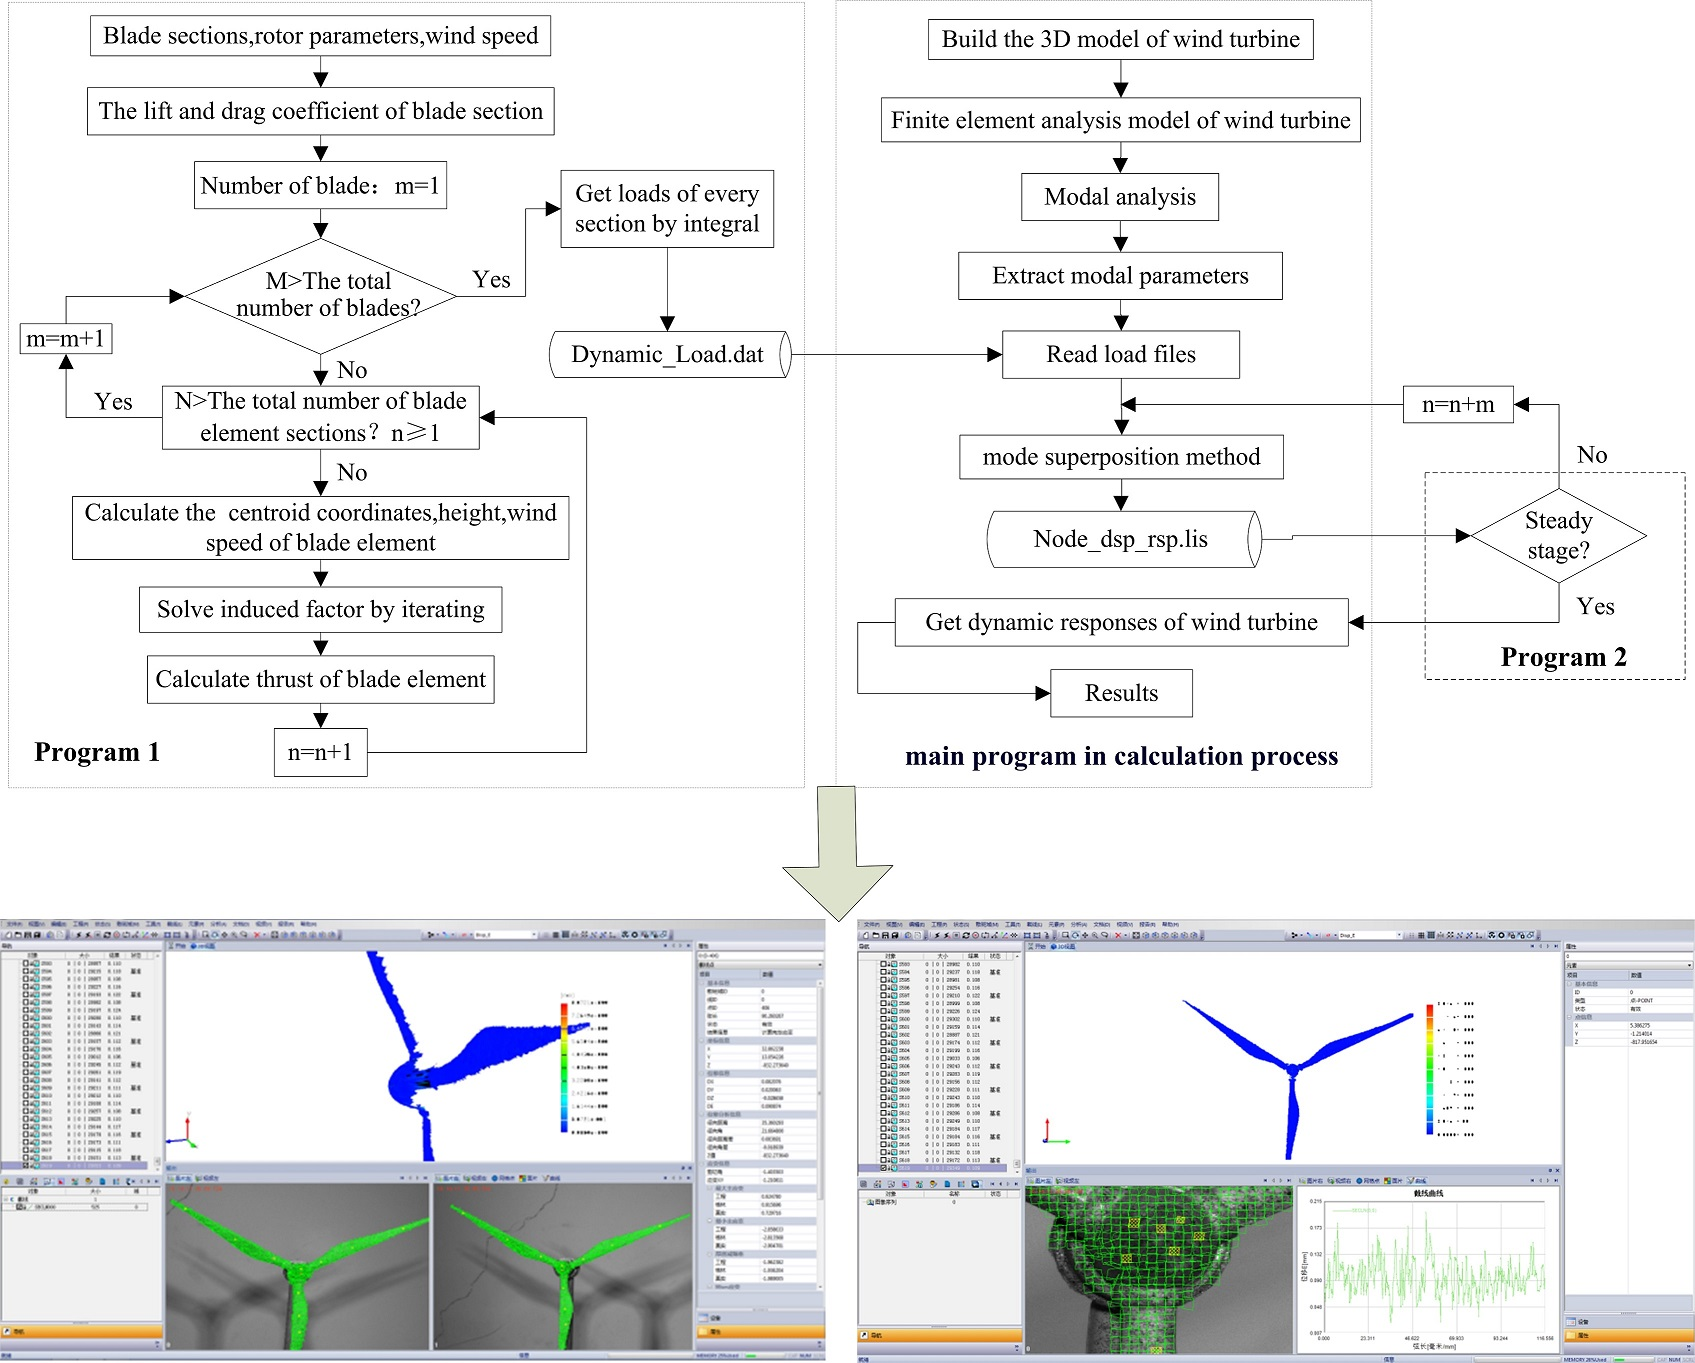 Dynamic performance analysis for wind turbine in complex conditions